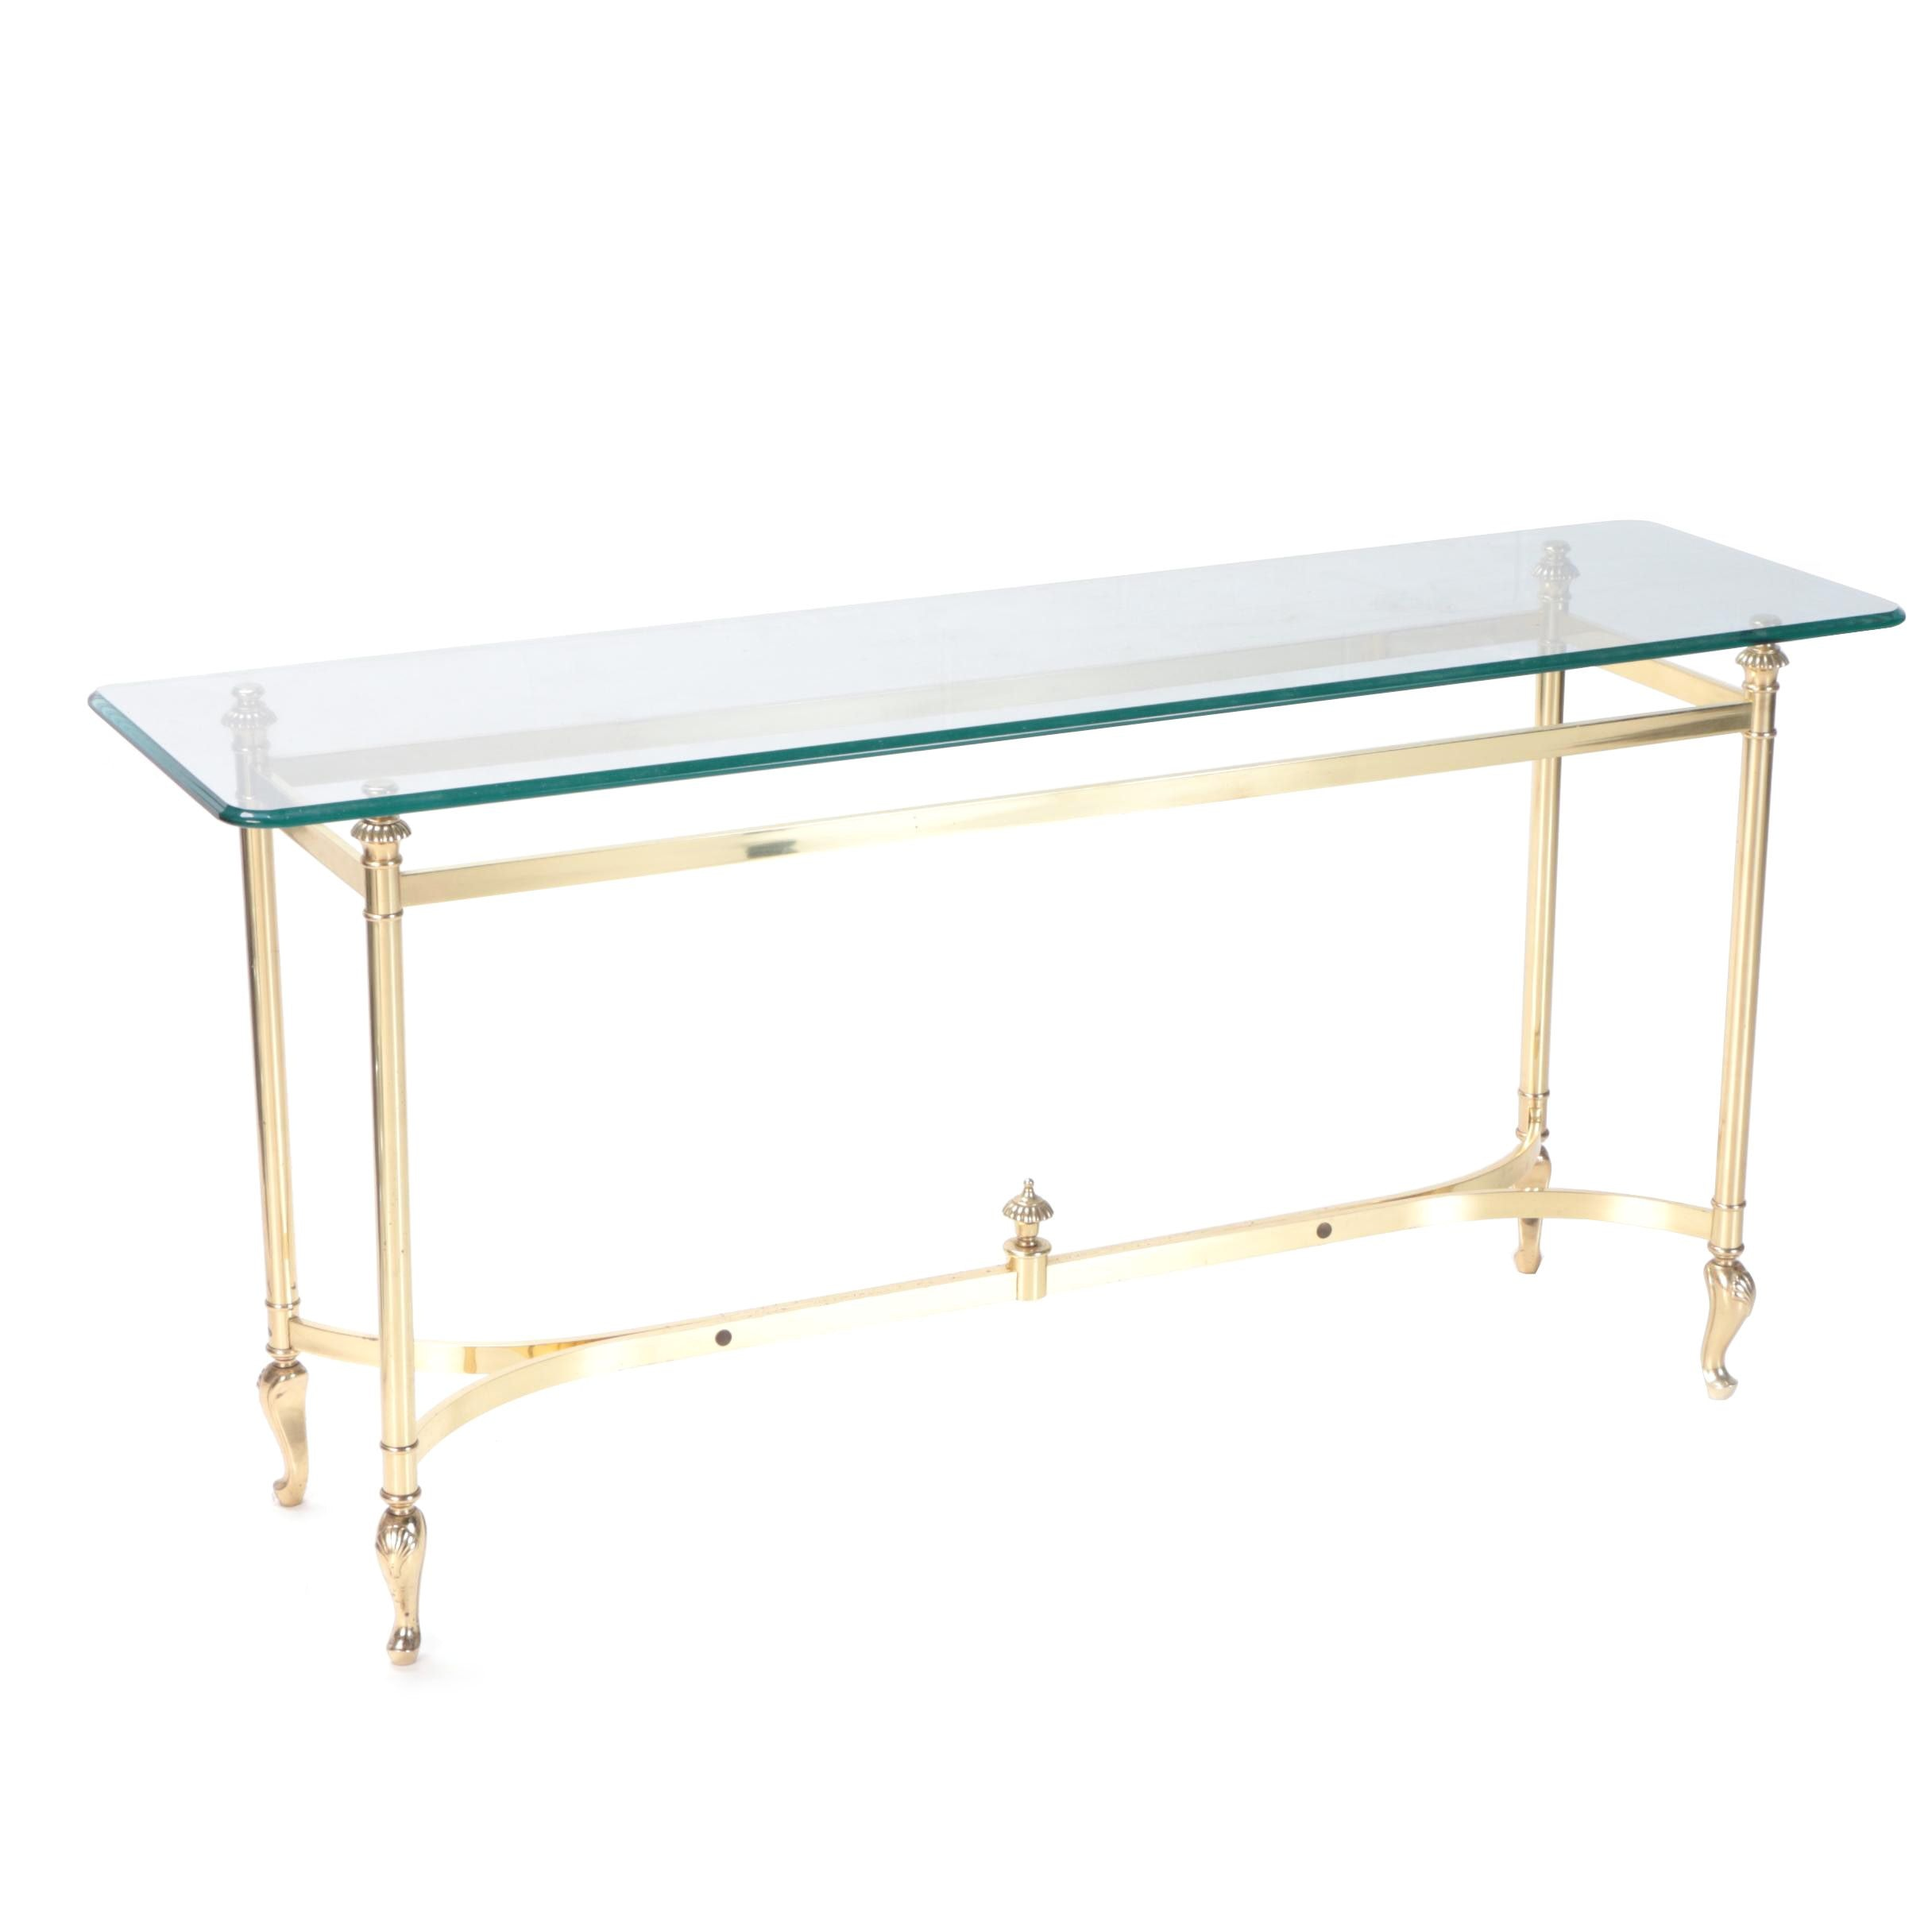 Hollywood Regency Style Glass Top Console Table, Mid 20th Century